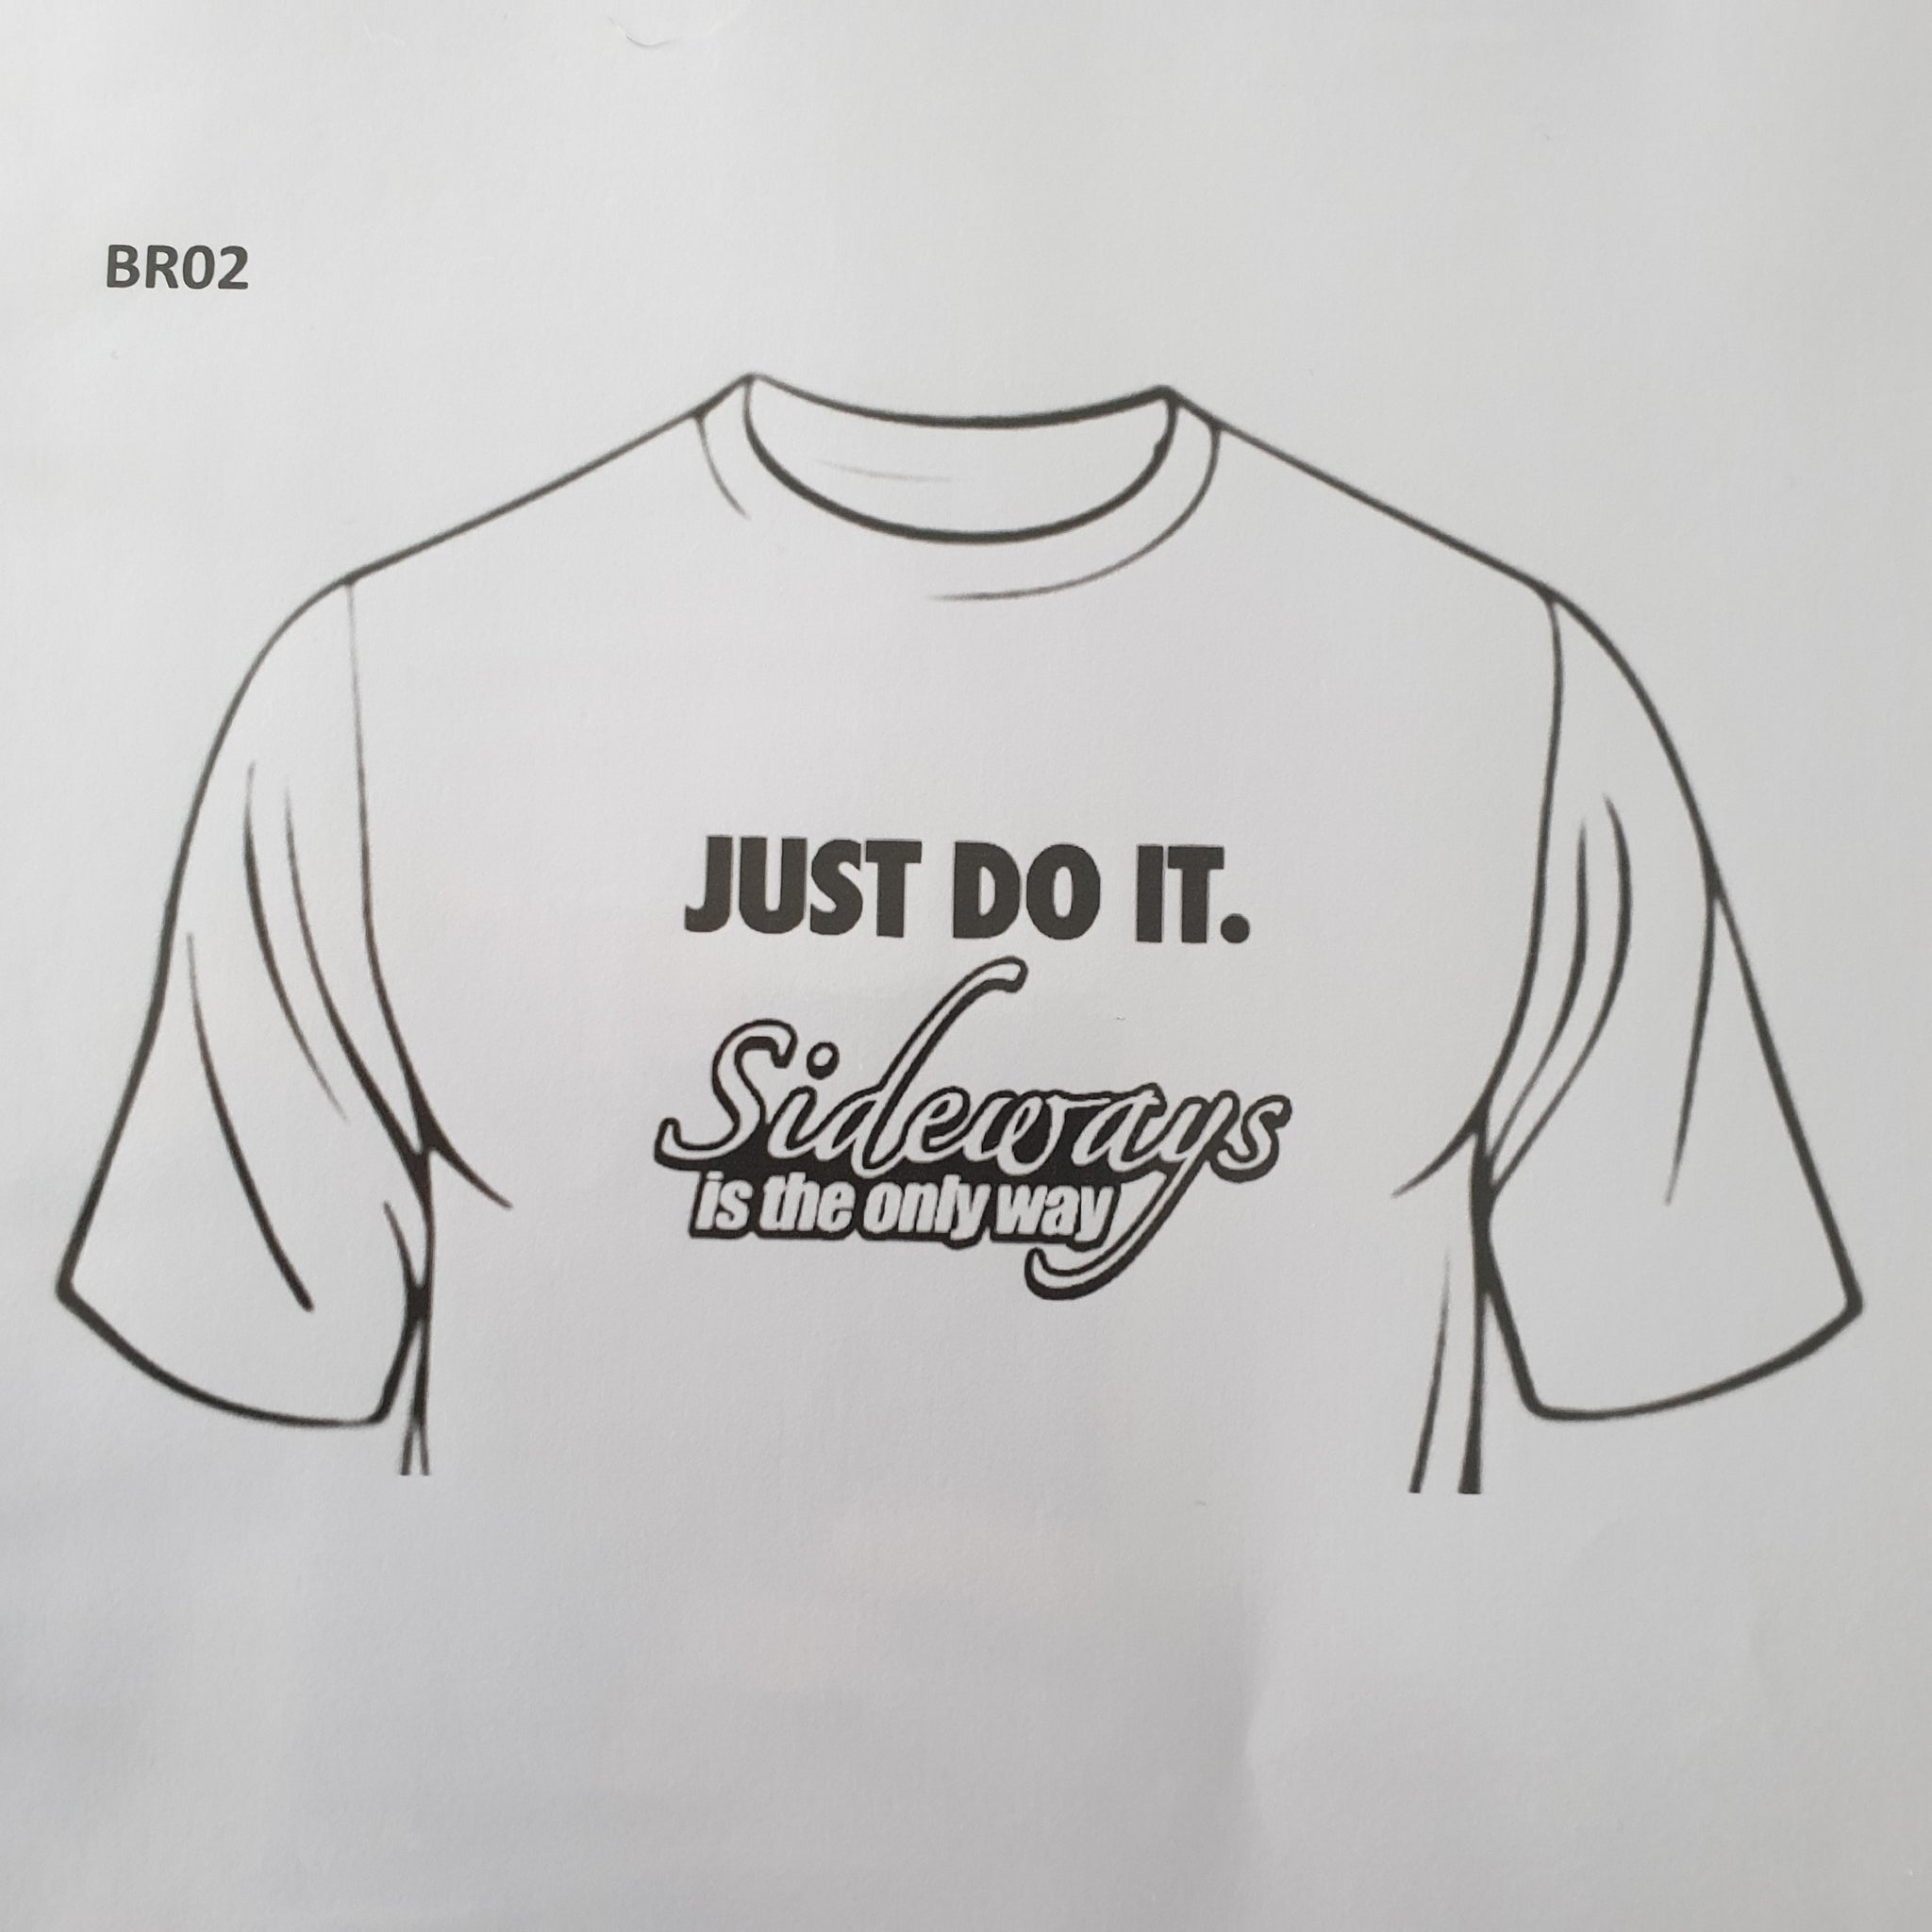 Just Do It Sideways Is The Only Way To Do It - Tee Shirt - Sweat Shirt - Hoodie